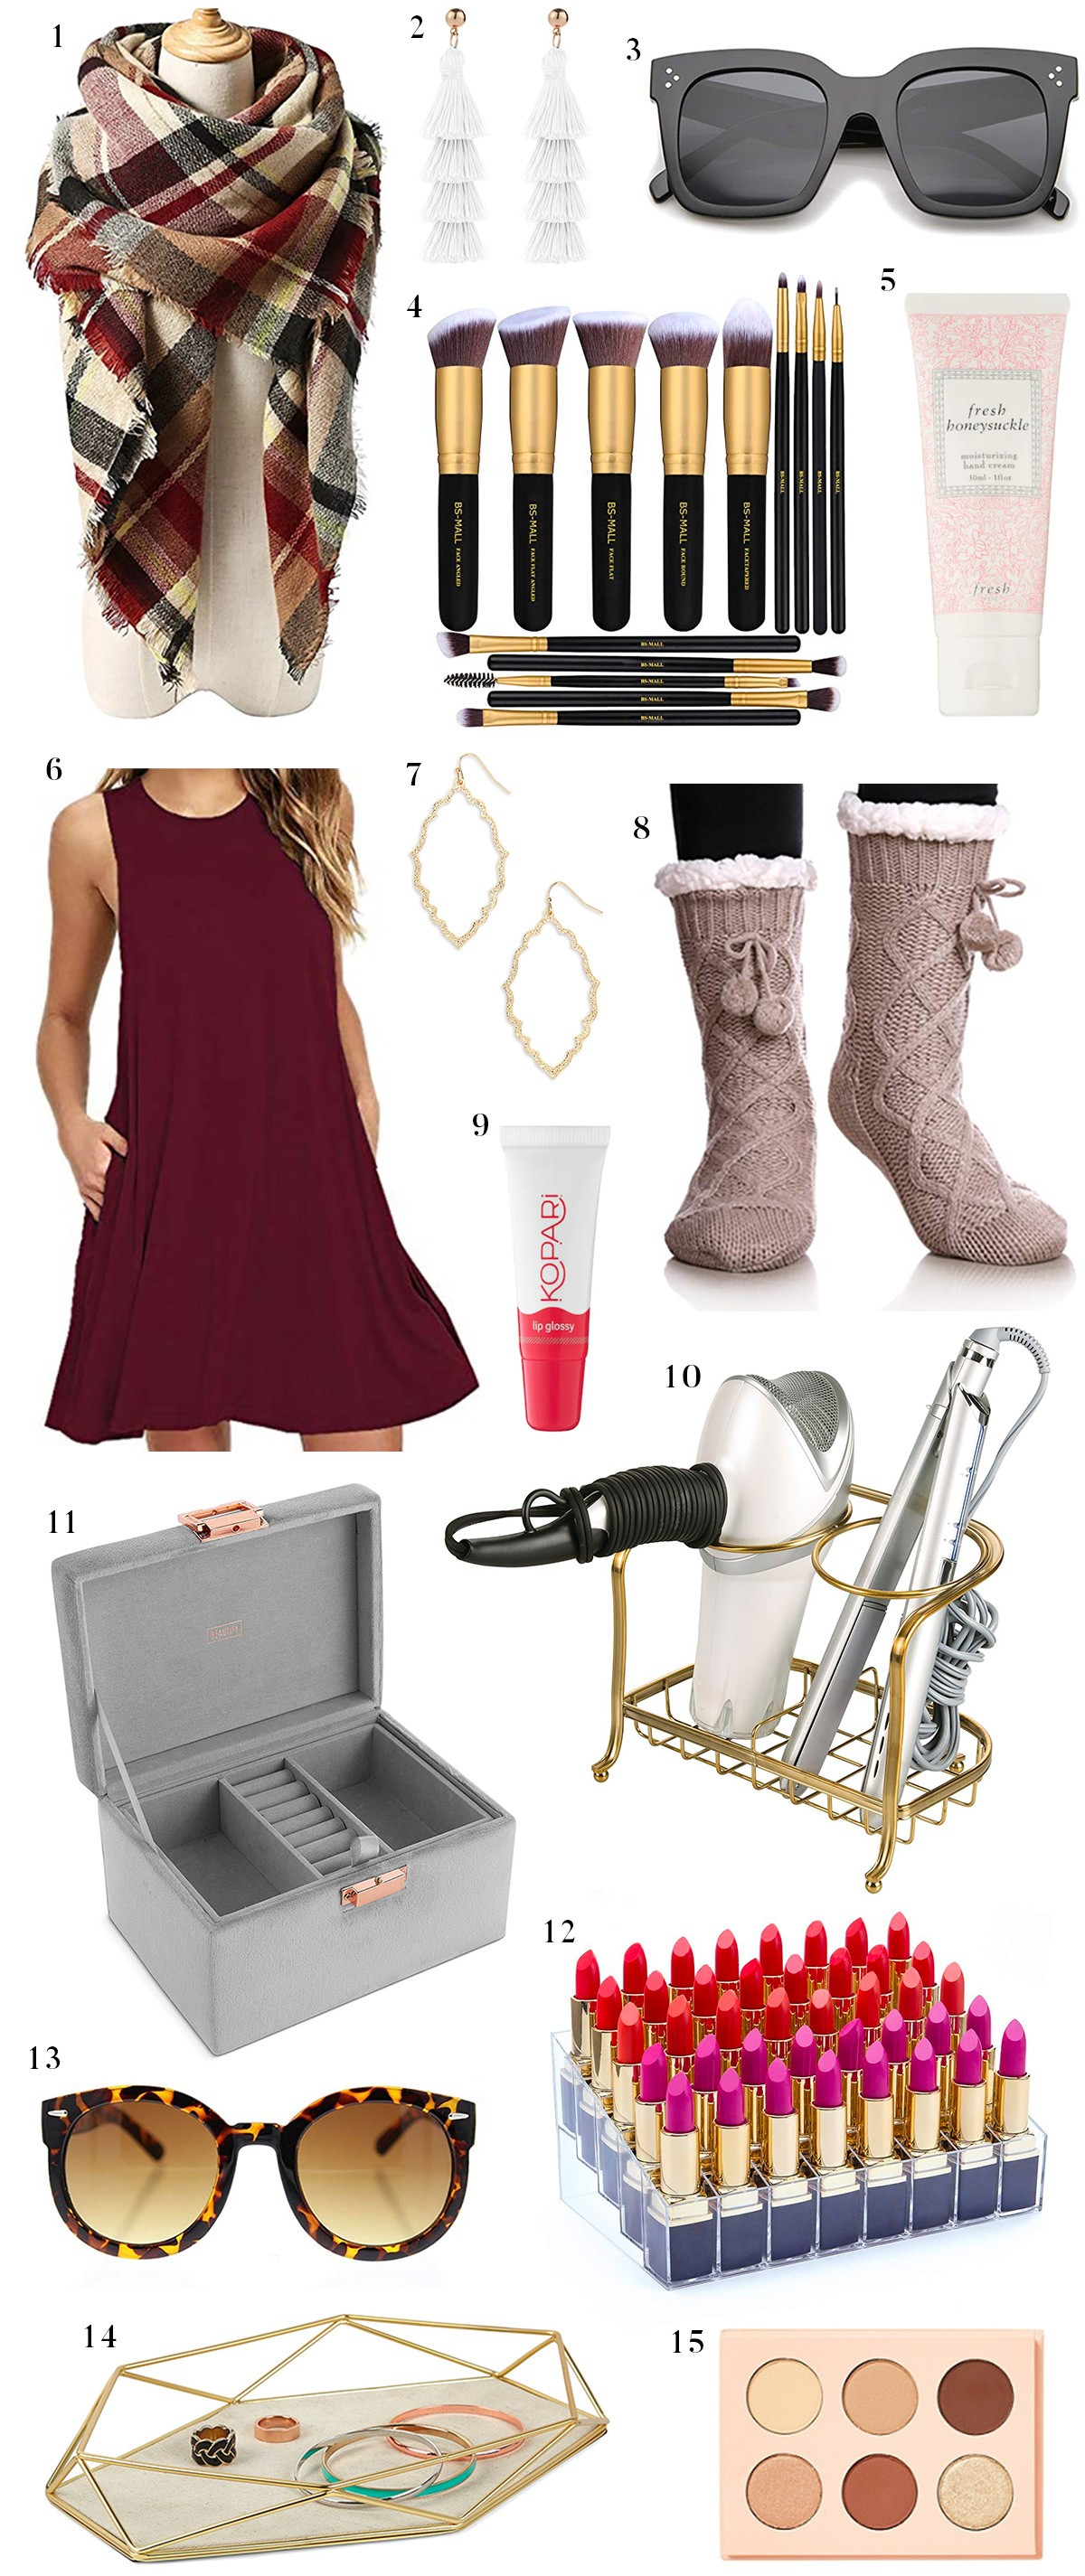 2018 Best Christmas Gifts for Women Under $15 | Ashley ...